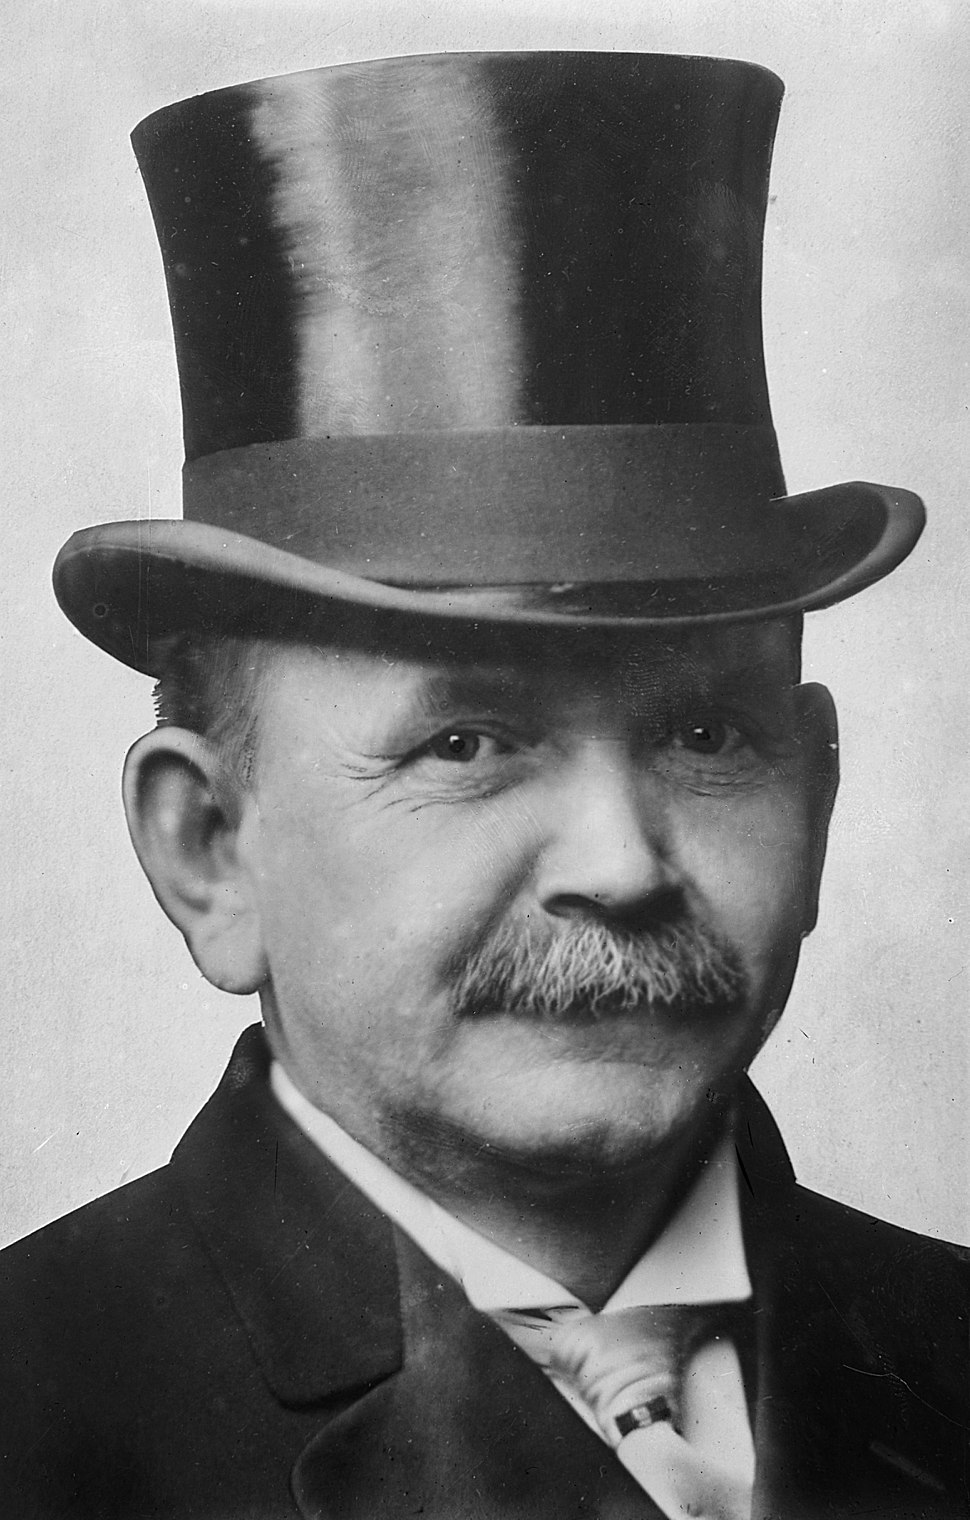 Austin Lane Crothers, photograph of head with top hat